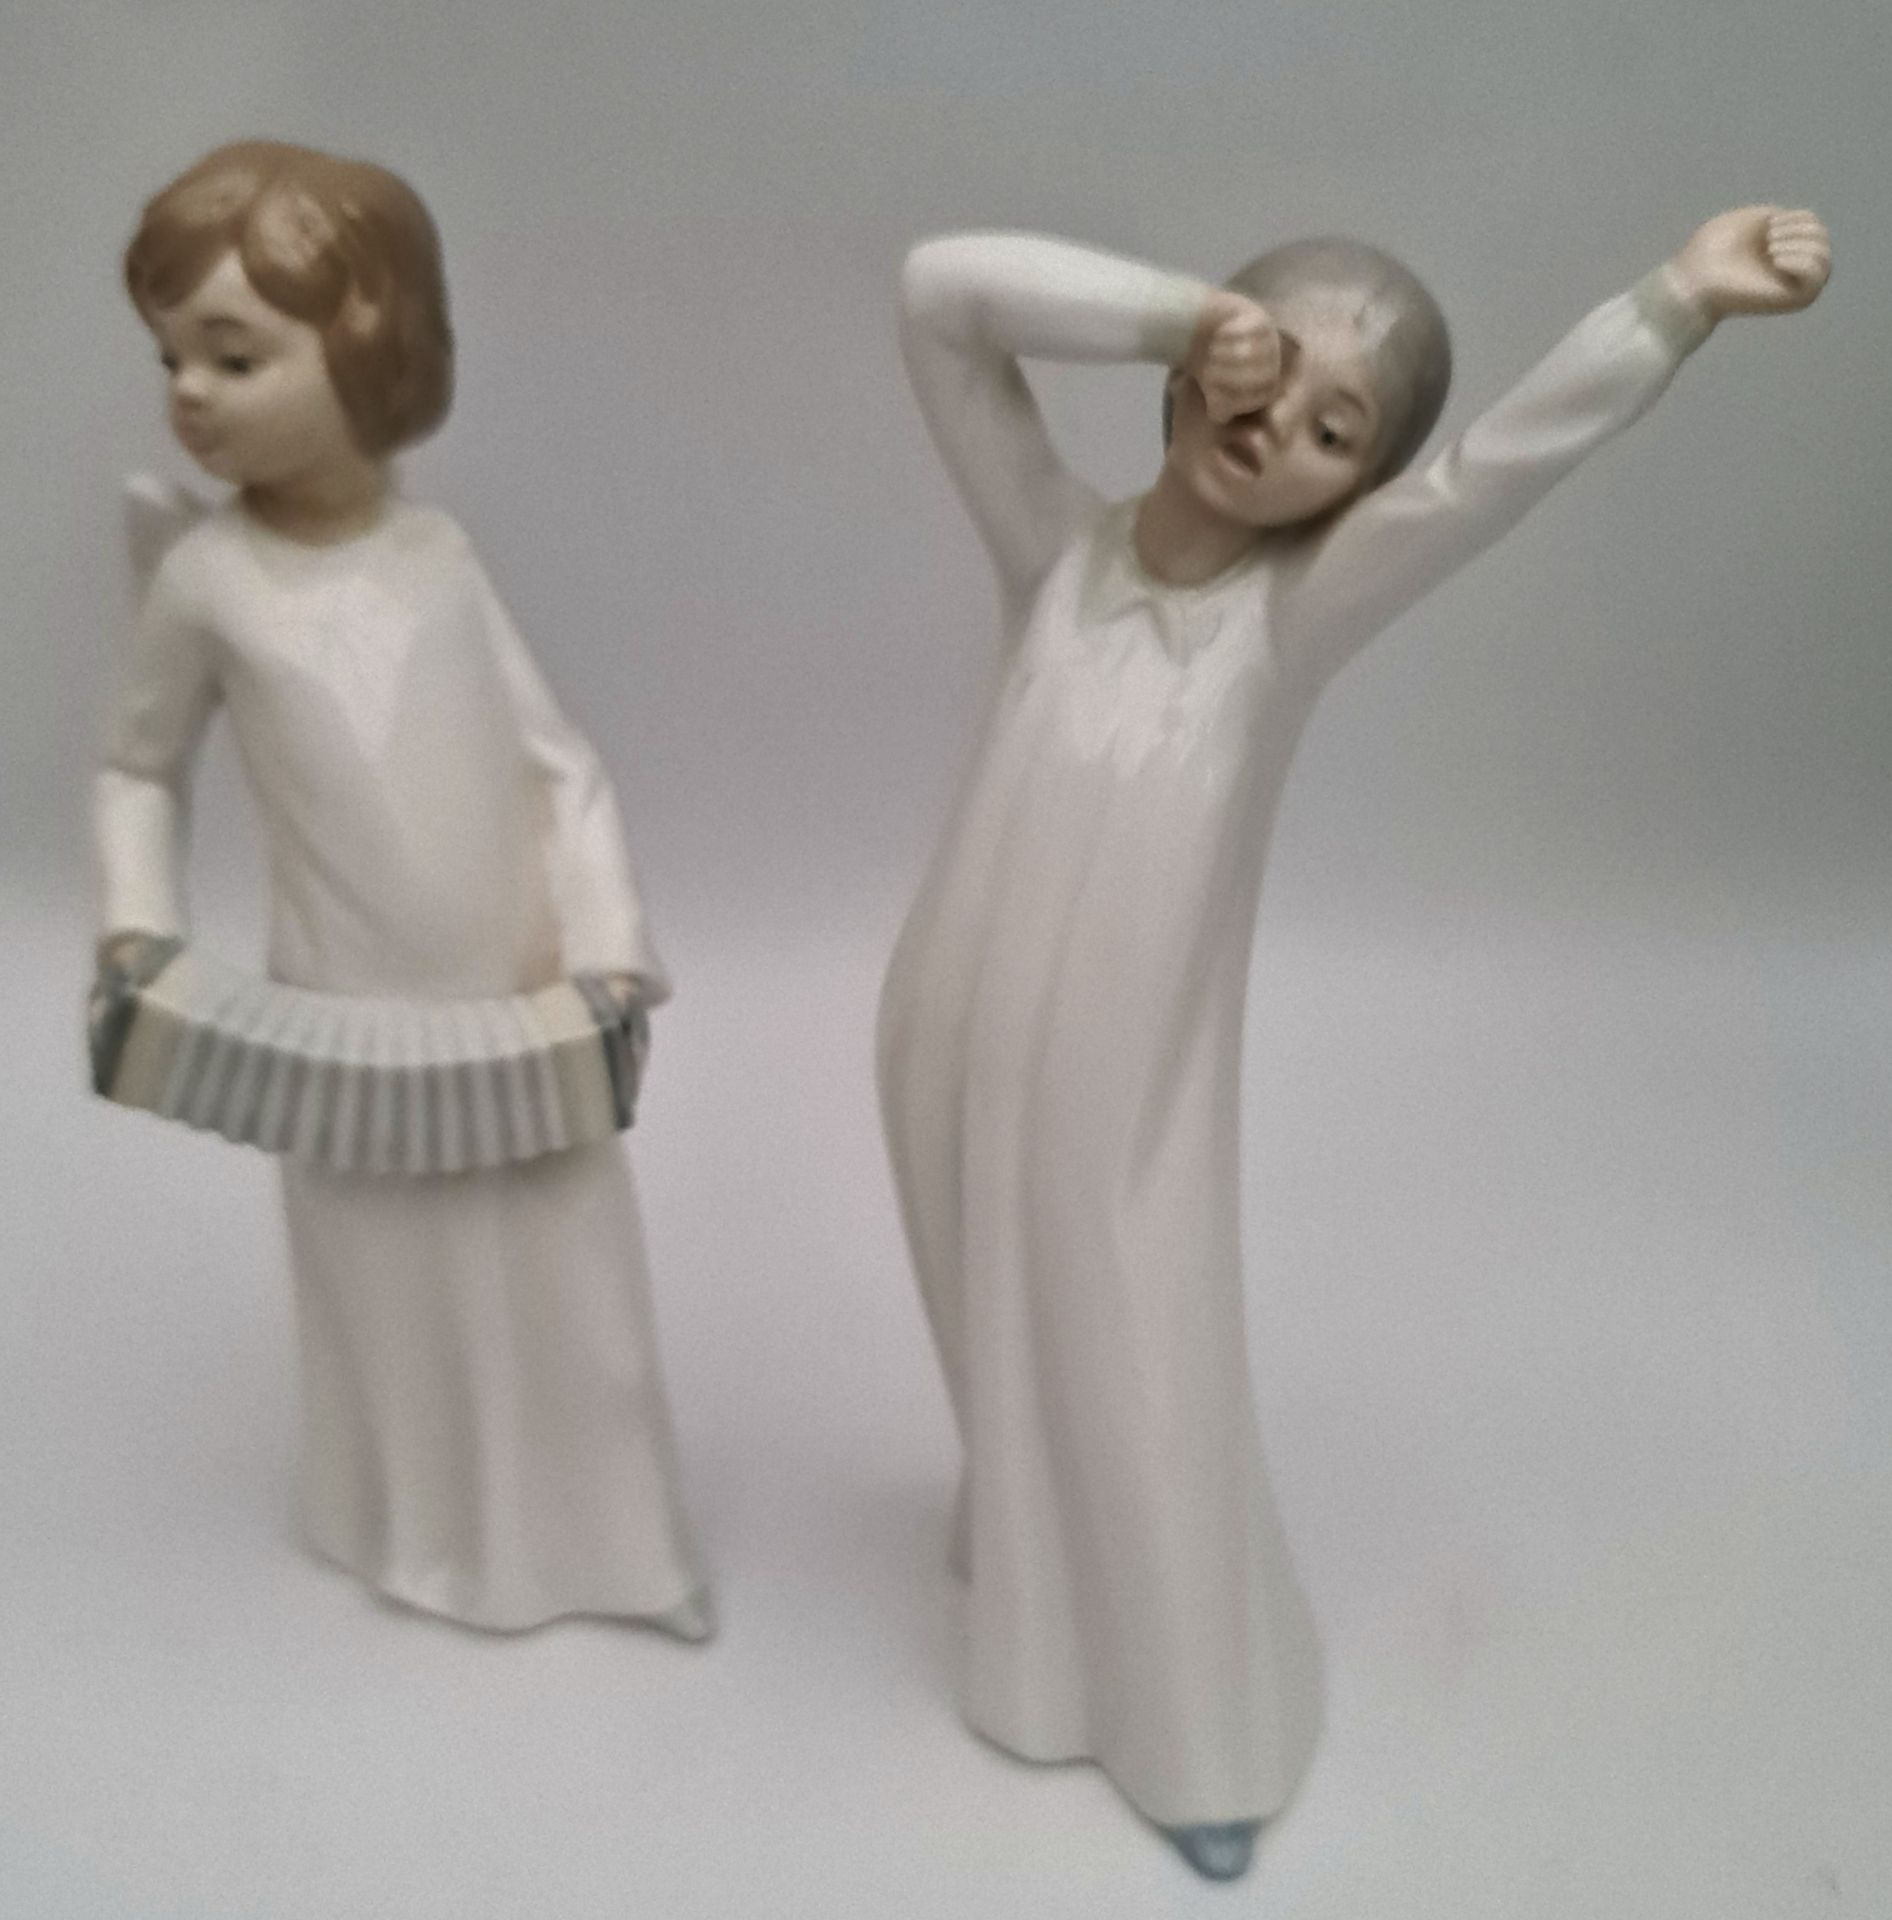 Vintage Pair of Lladro Figures 8 inches tall